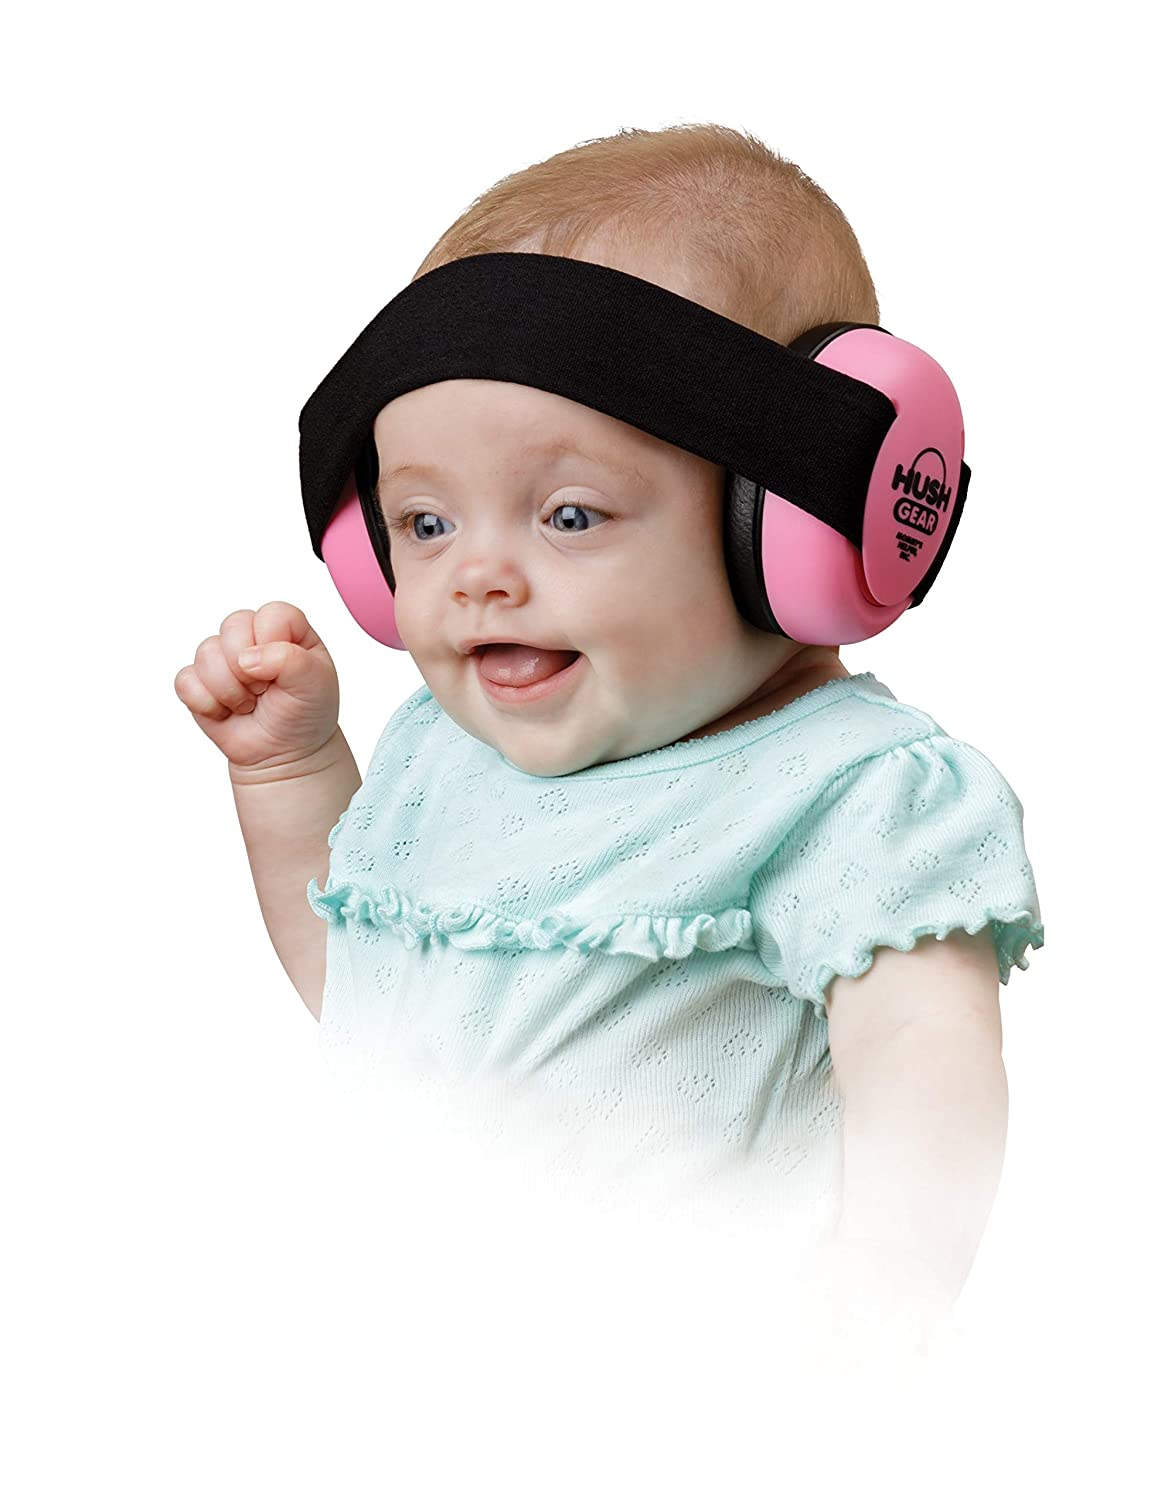 Hush Gear Baby Noise Cancelling Headphones for Babies Infant Ear Protection - 28.6db Sound Reduction Baby Ear Protection Ear Muffs - Adjustable Elastic Headband for Secure Comfortable Fit, Pink